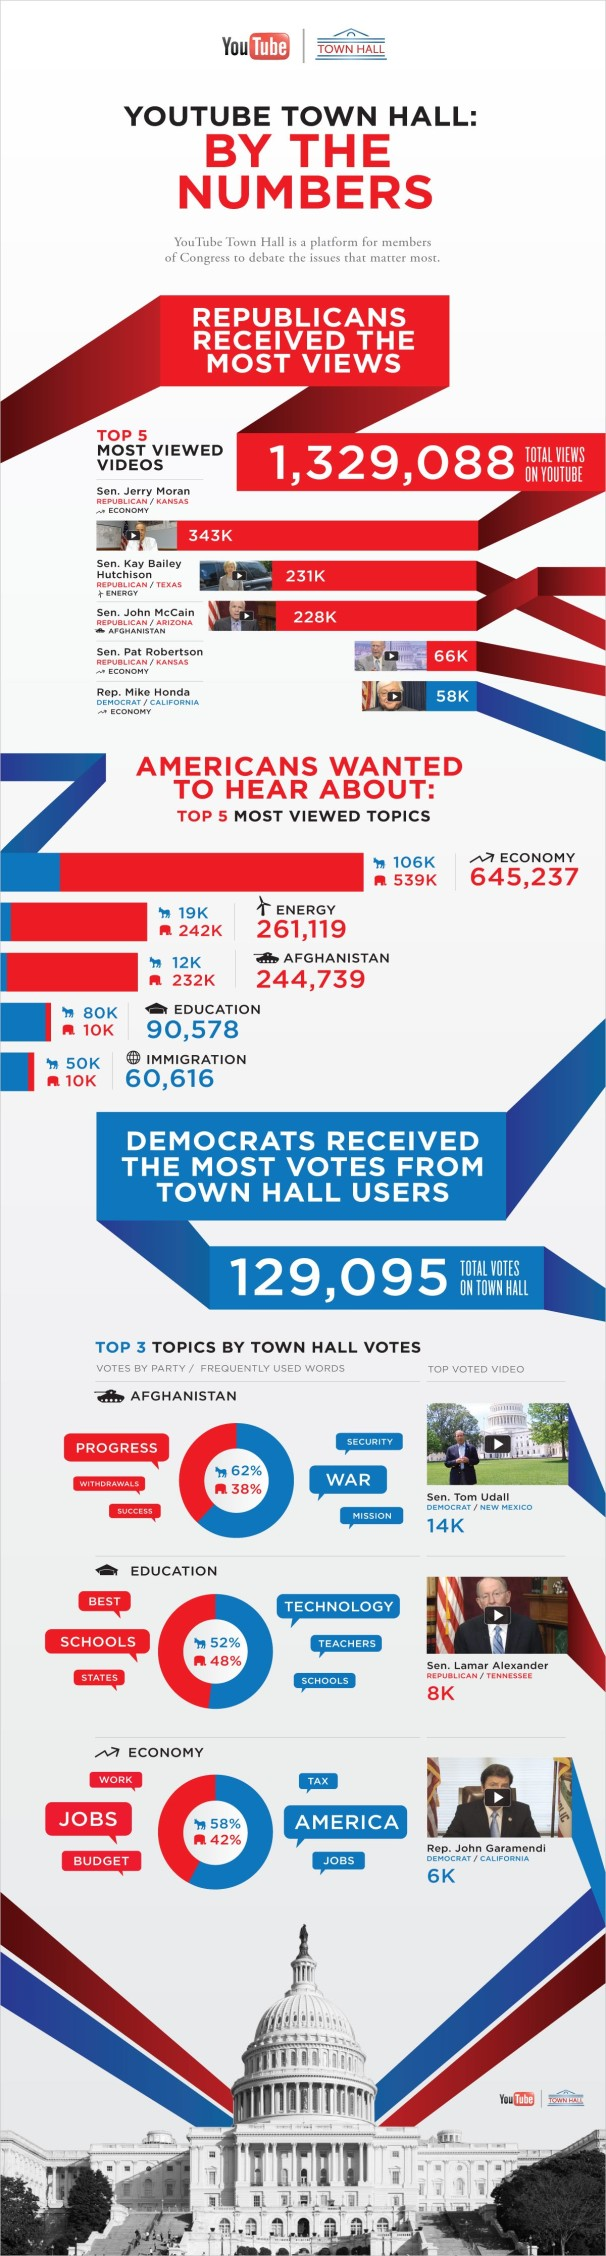 YouTube townhall: by the numbers